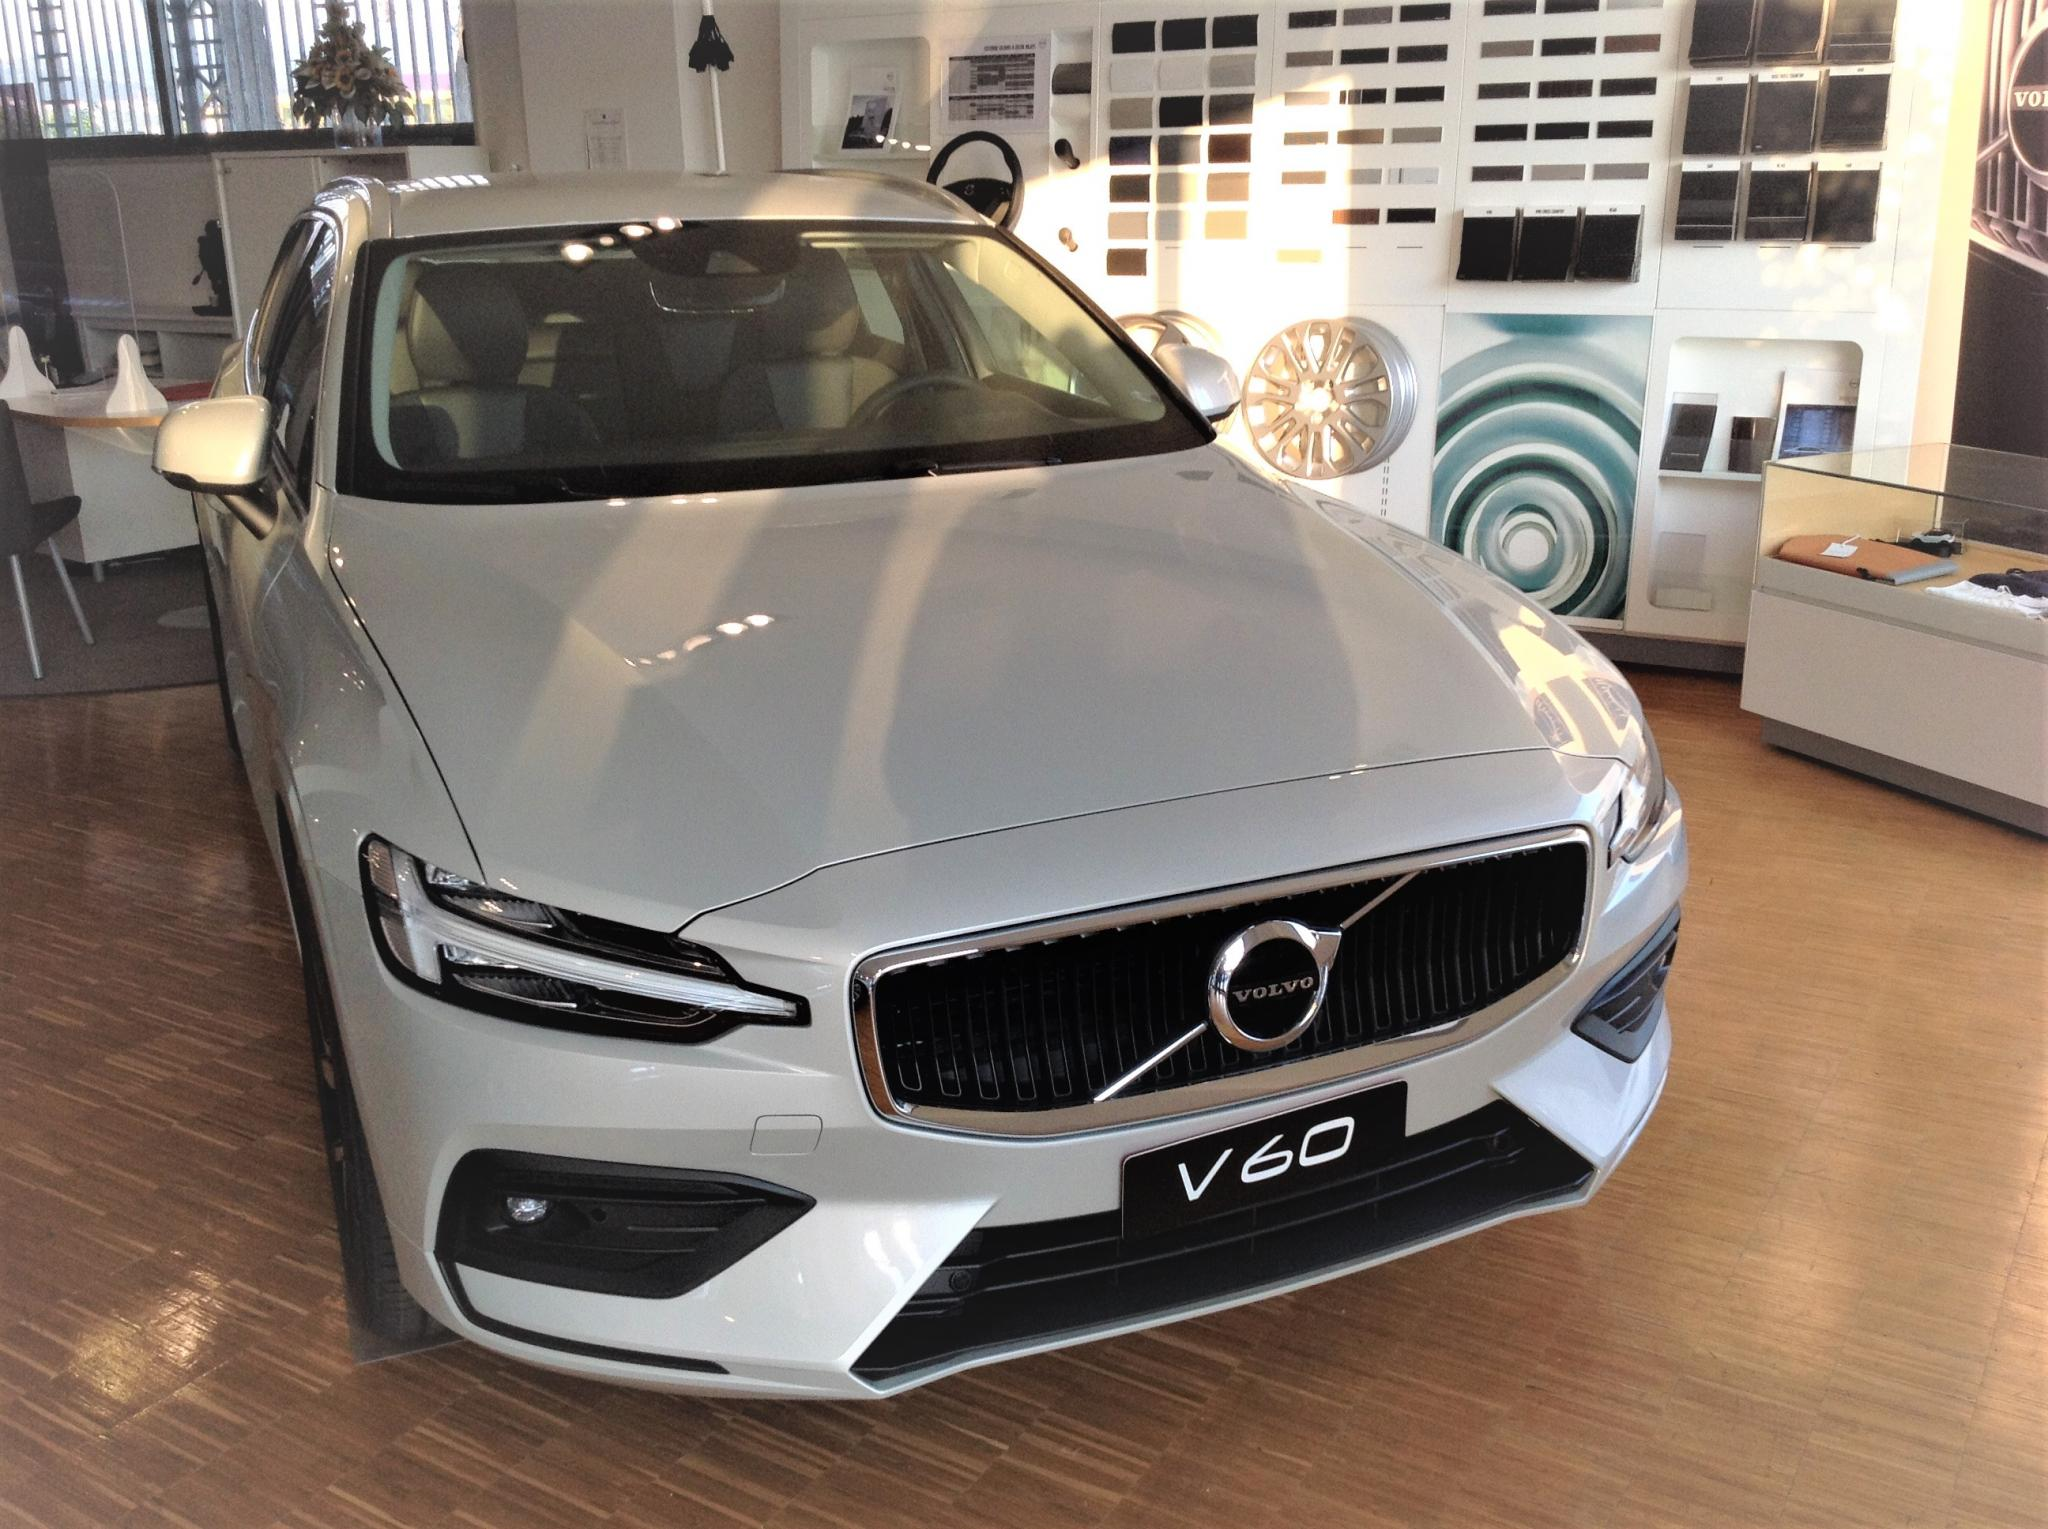 Foto Volvo V60 D3 Geartronic Business Plus *anche N1- A 267,41€ AL MESE*